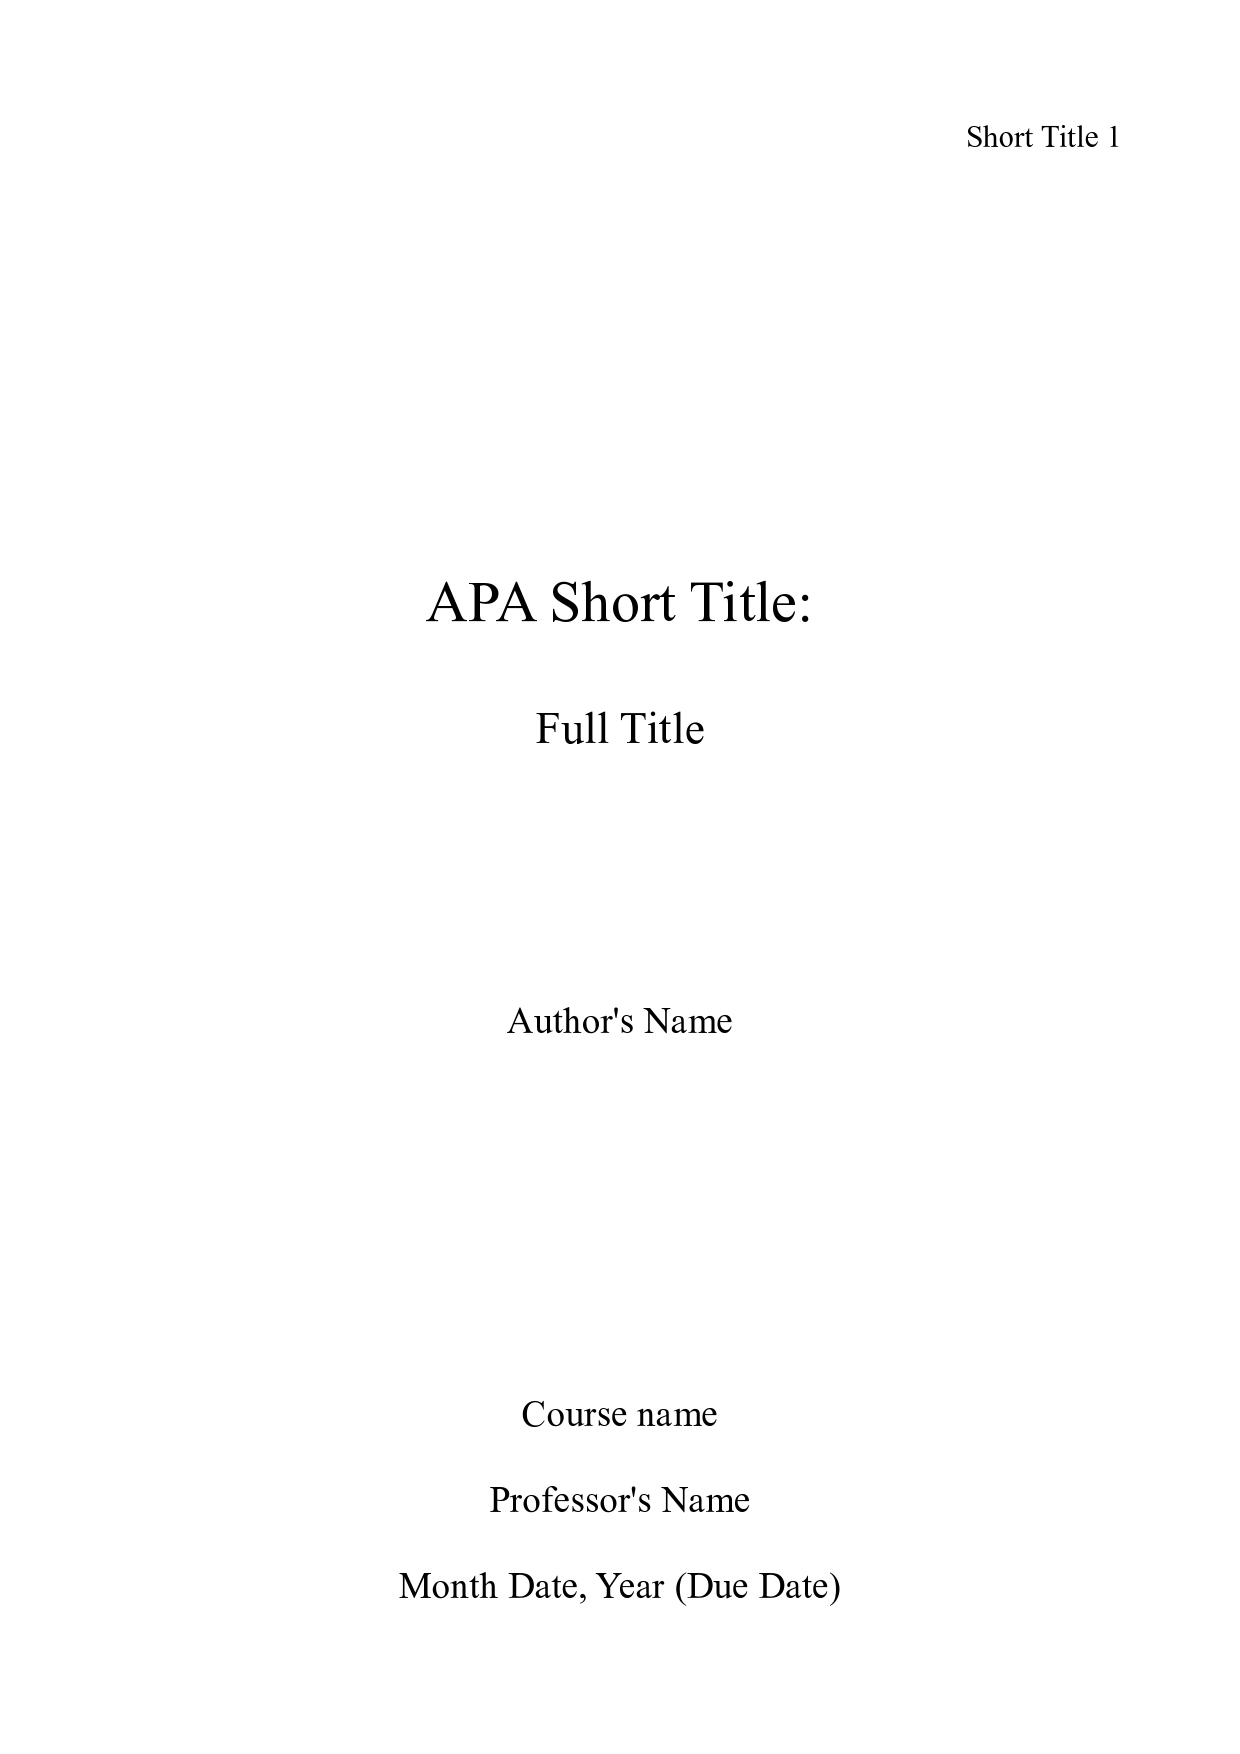 009 First Page Of Research Paper Mla Apa Title Rare A Style For The Full